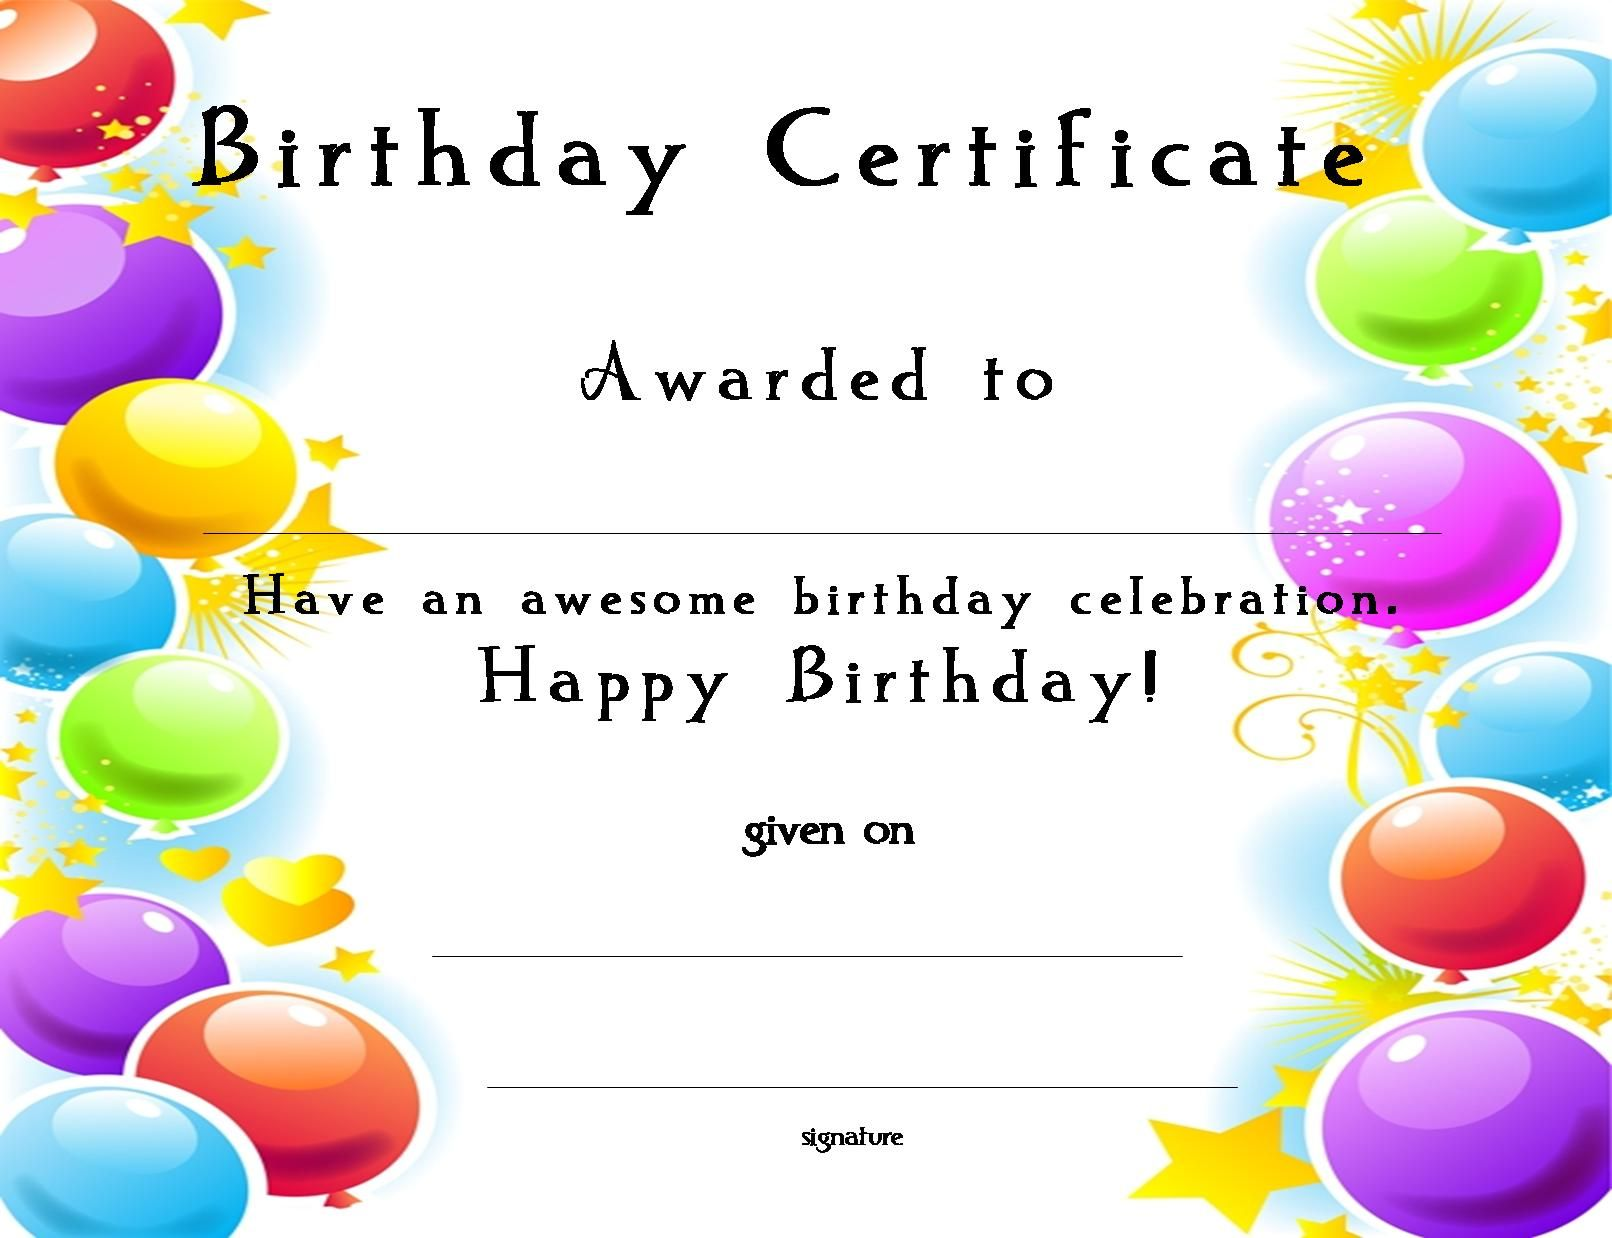 Certificatetemplate Happy Birthday Certificate For Your Kids